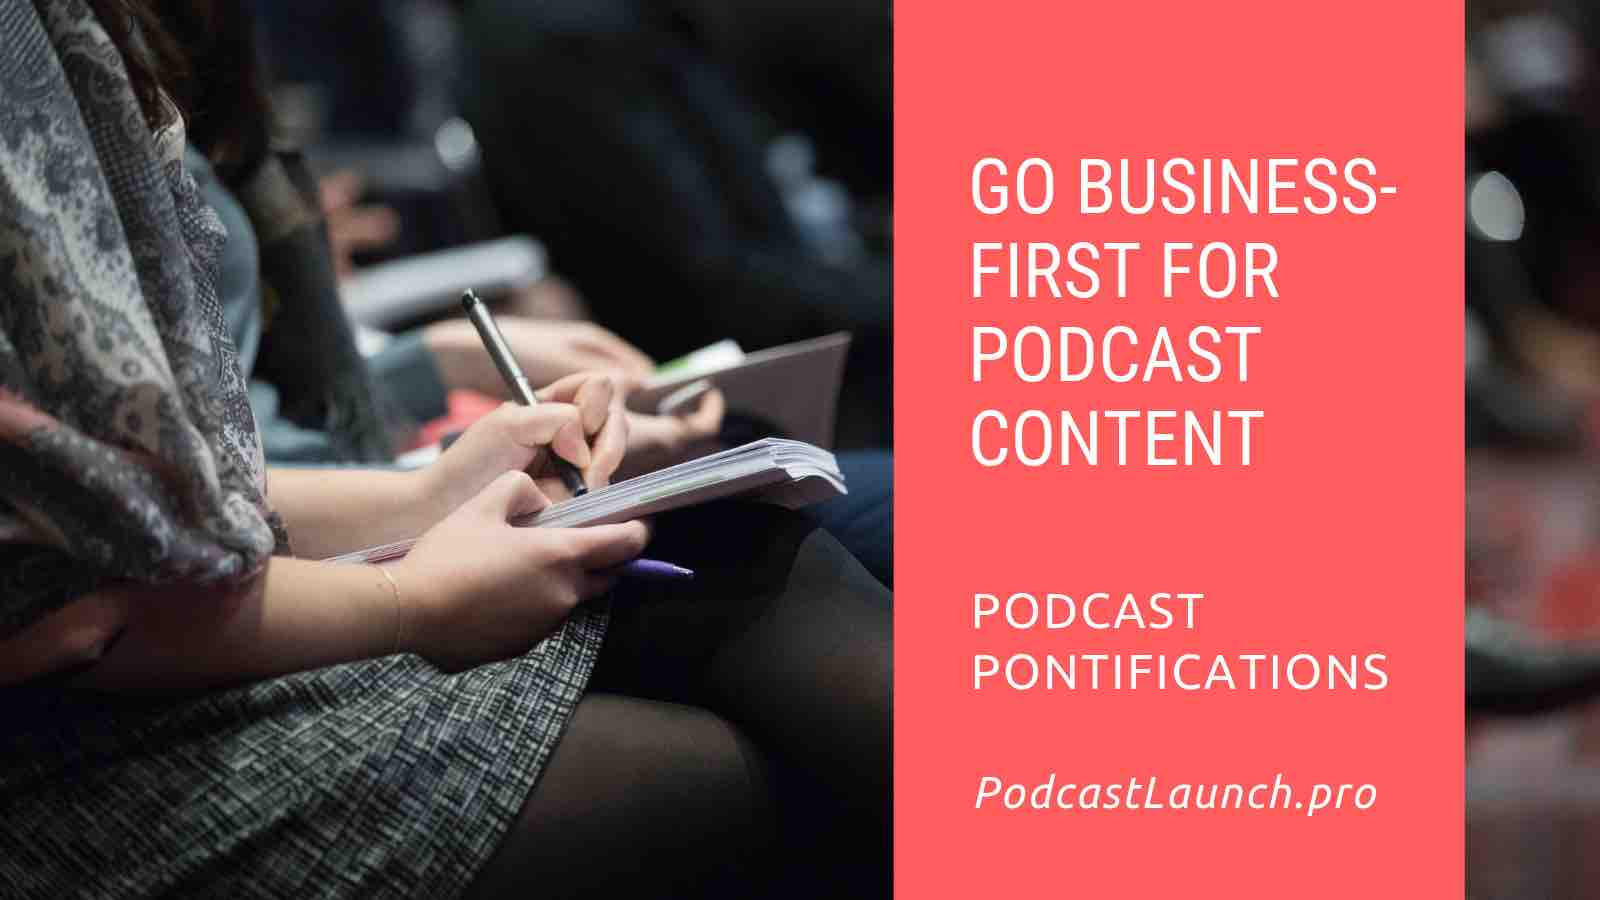 Going Business-First With Your Podcast Is A Smart Business Move